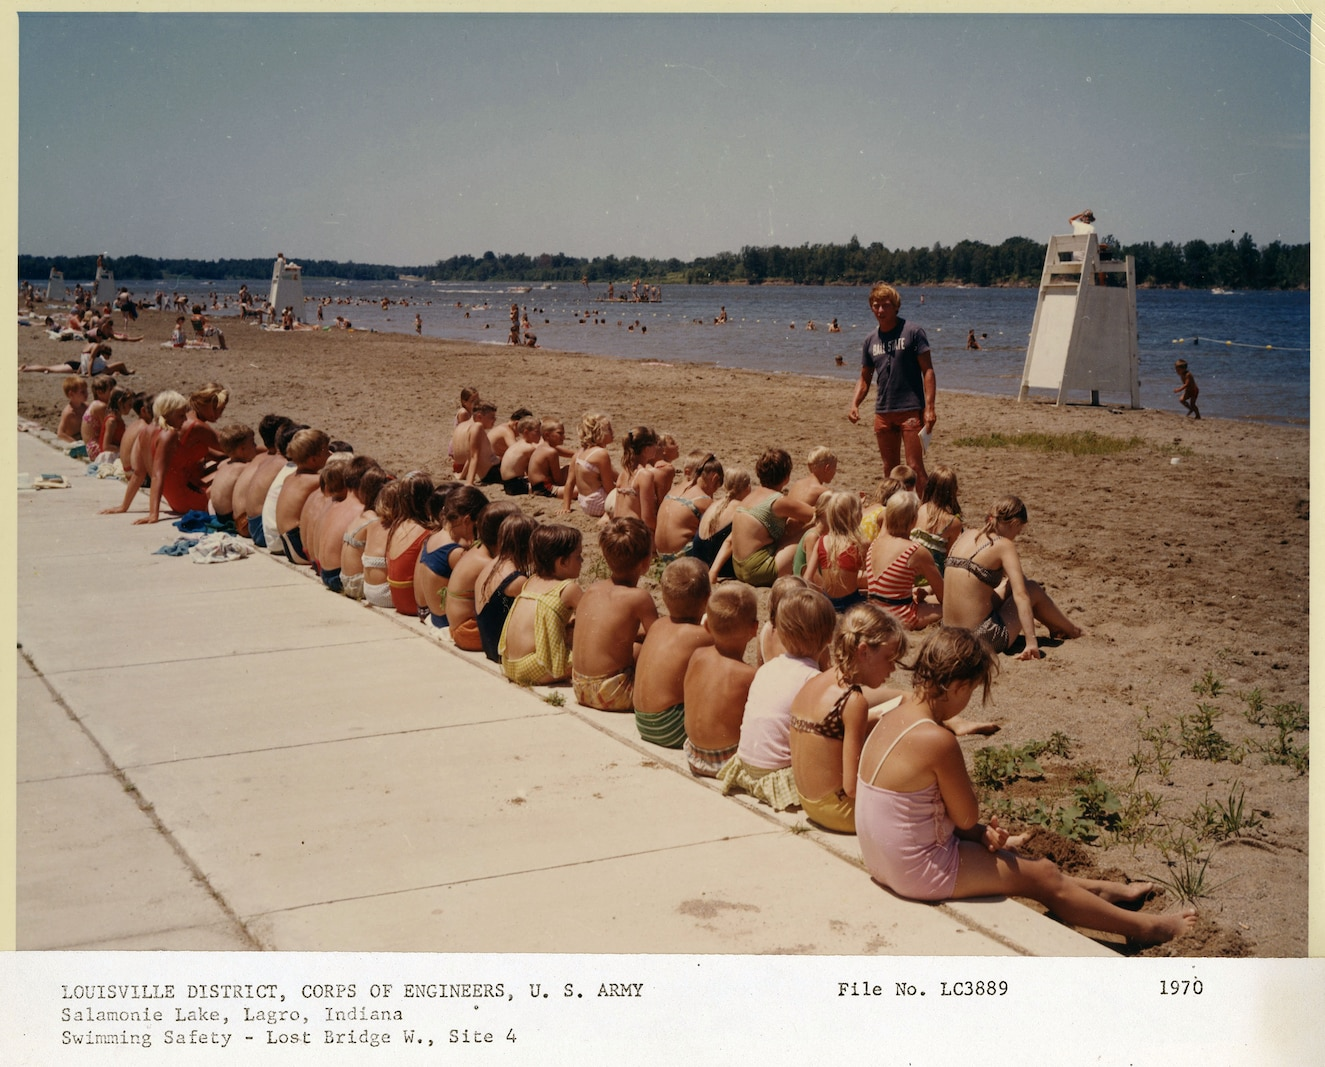 Children sit in rows on the sand listening to a male lifeguard give a swimming safety lesson with lake in the background